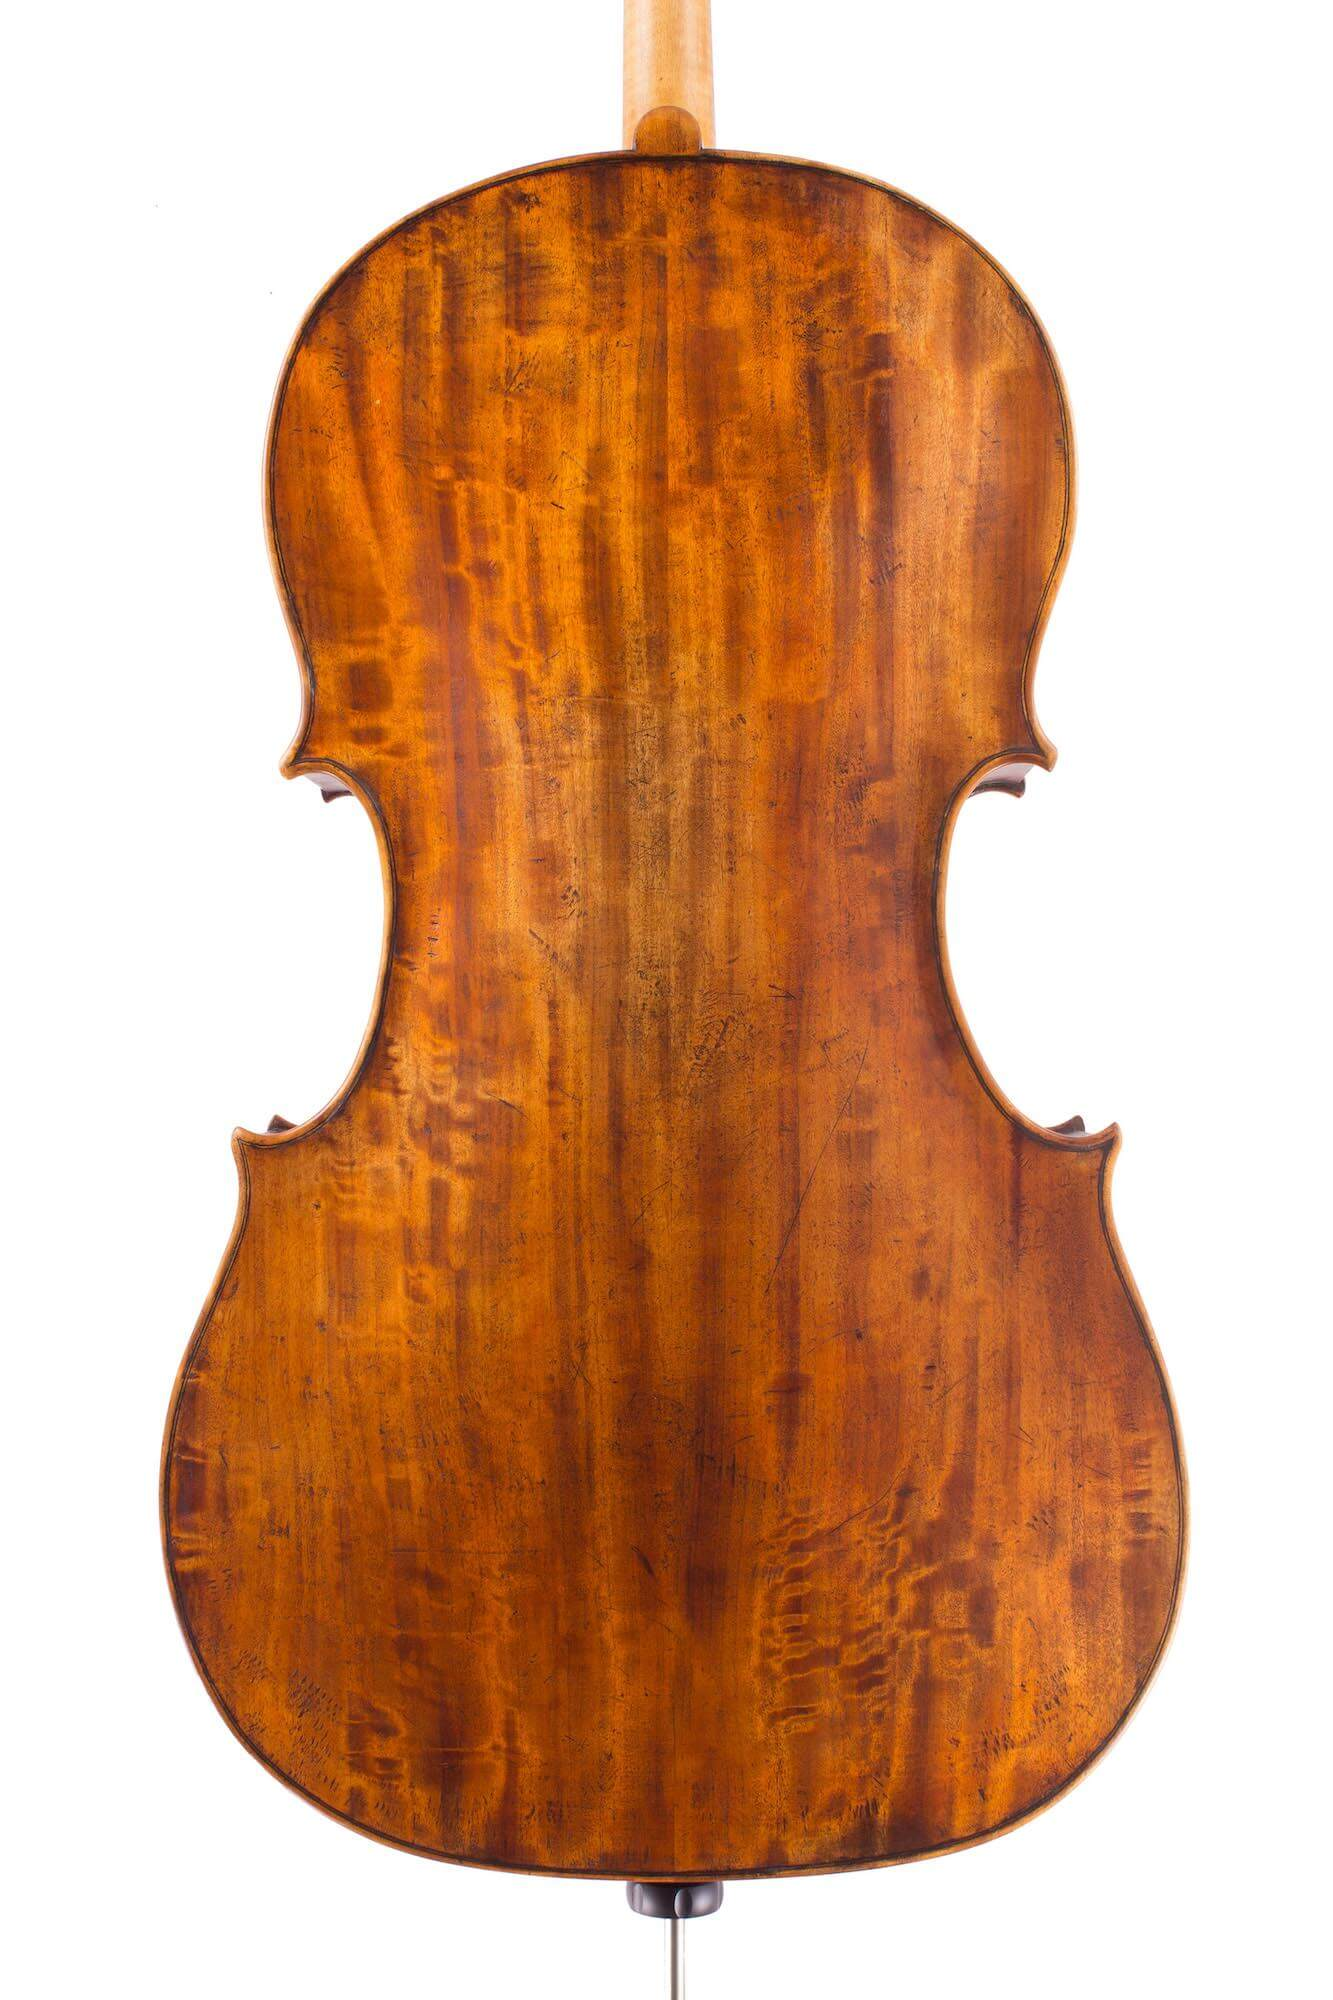 Cello by Luiz Amorim, Rogeri model, 2016